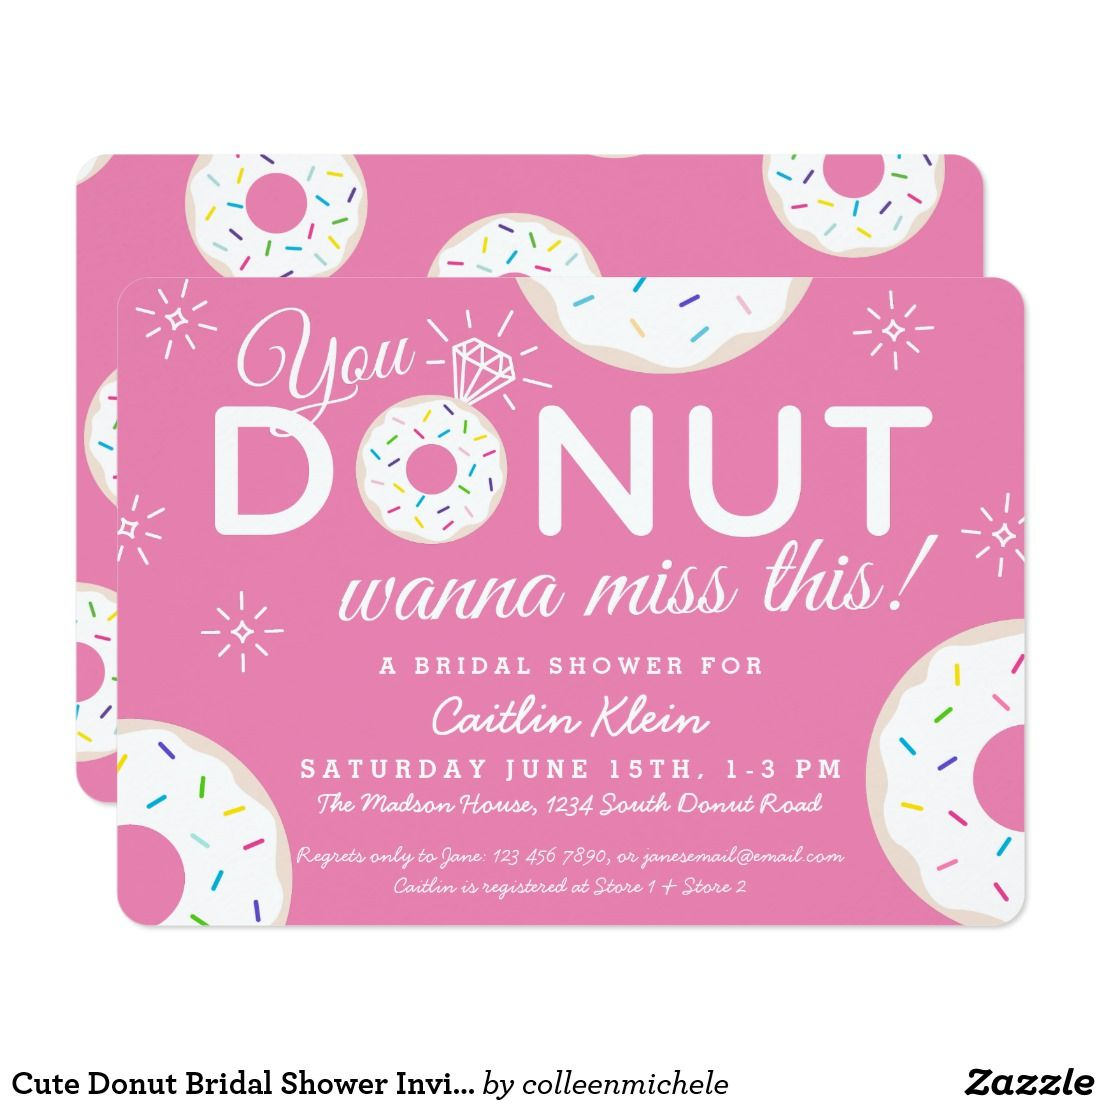 cute donut bridal shower invitations pink cute fun donut invitations for a donut themed bridal shower couples wedding shower or engagement party